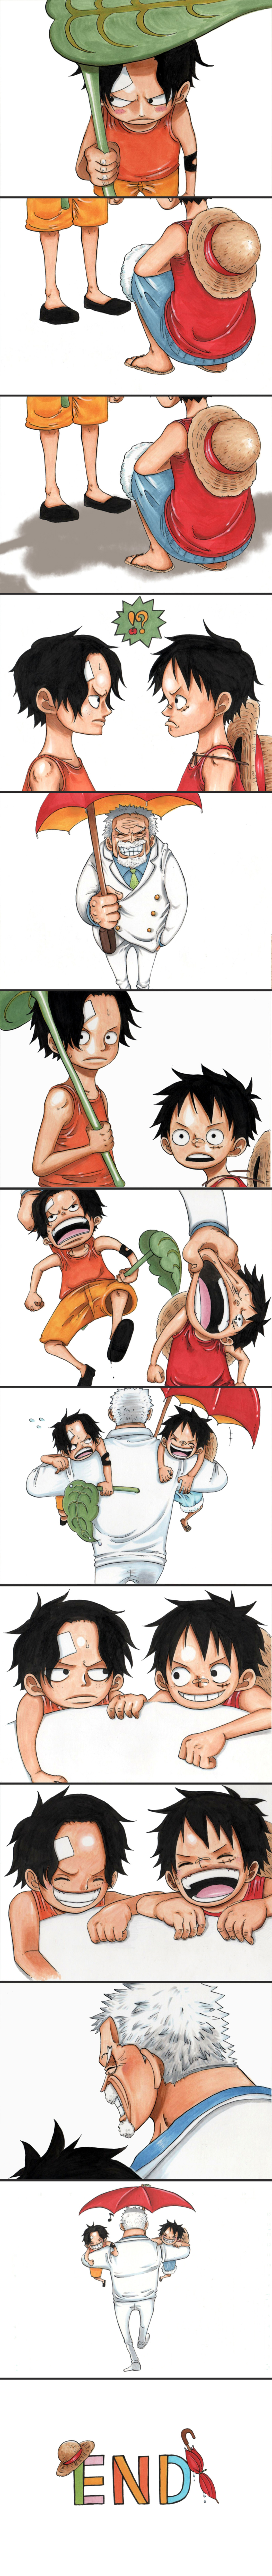 Garp. join list: onepiece (236 subs)Mention History.